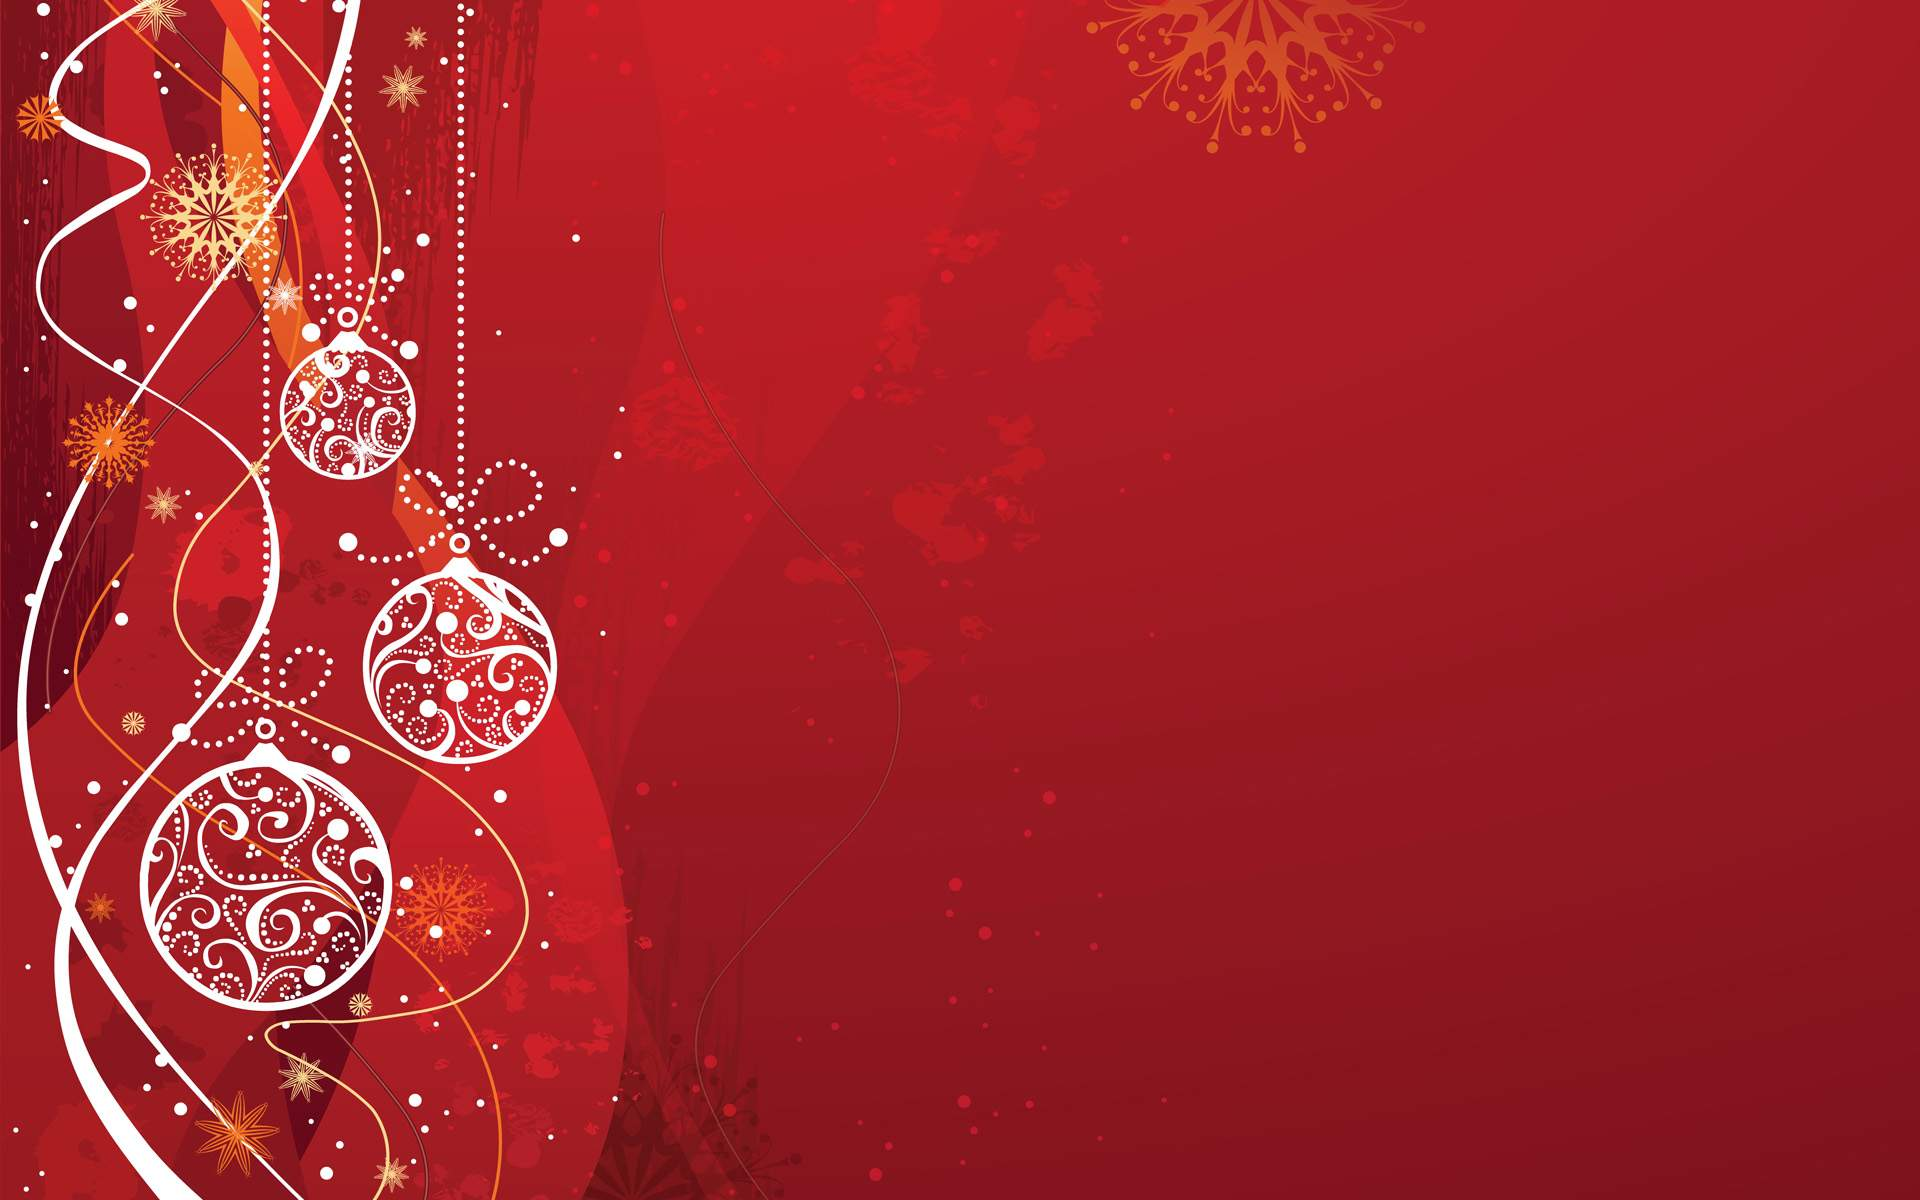 Christmas Backgrounds Free Download | PixelsTalk.Net